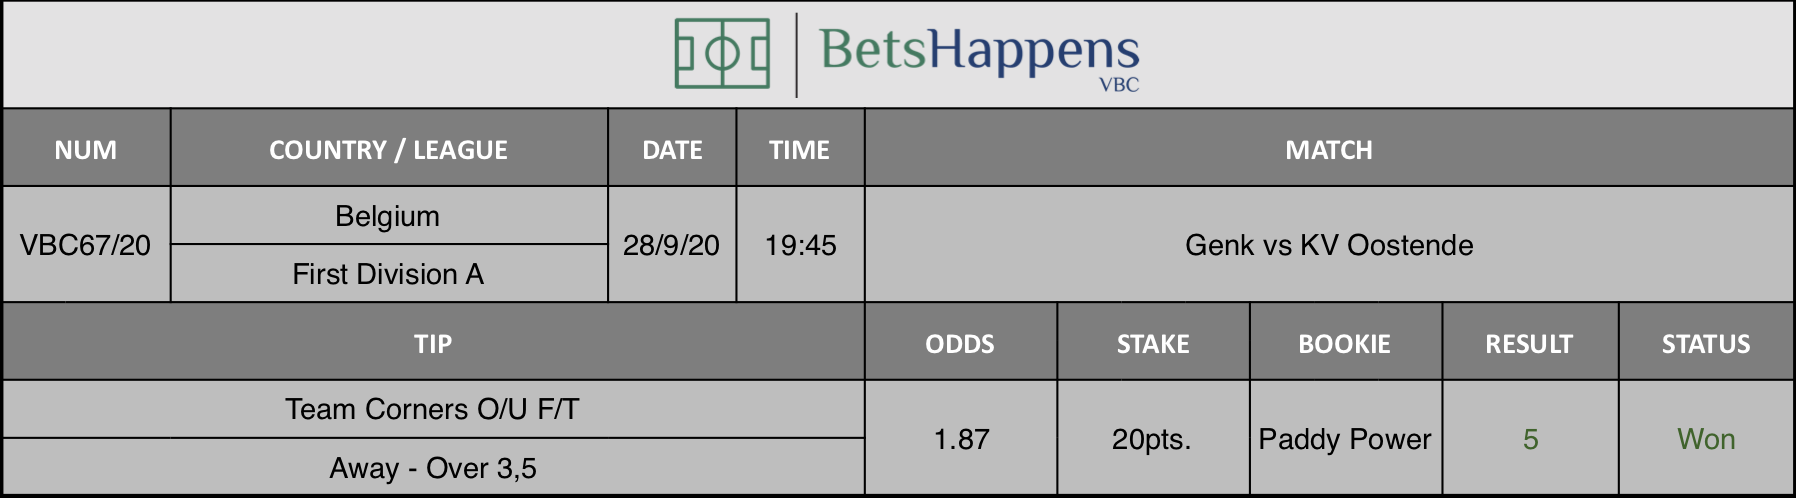 Results of our advice for the Genk vs KV Oostende match in which Team Corners O / U F / T Away Over 3.5 is recommended.